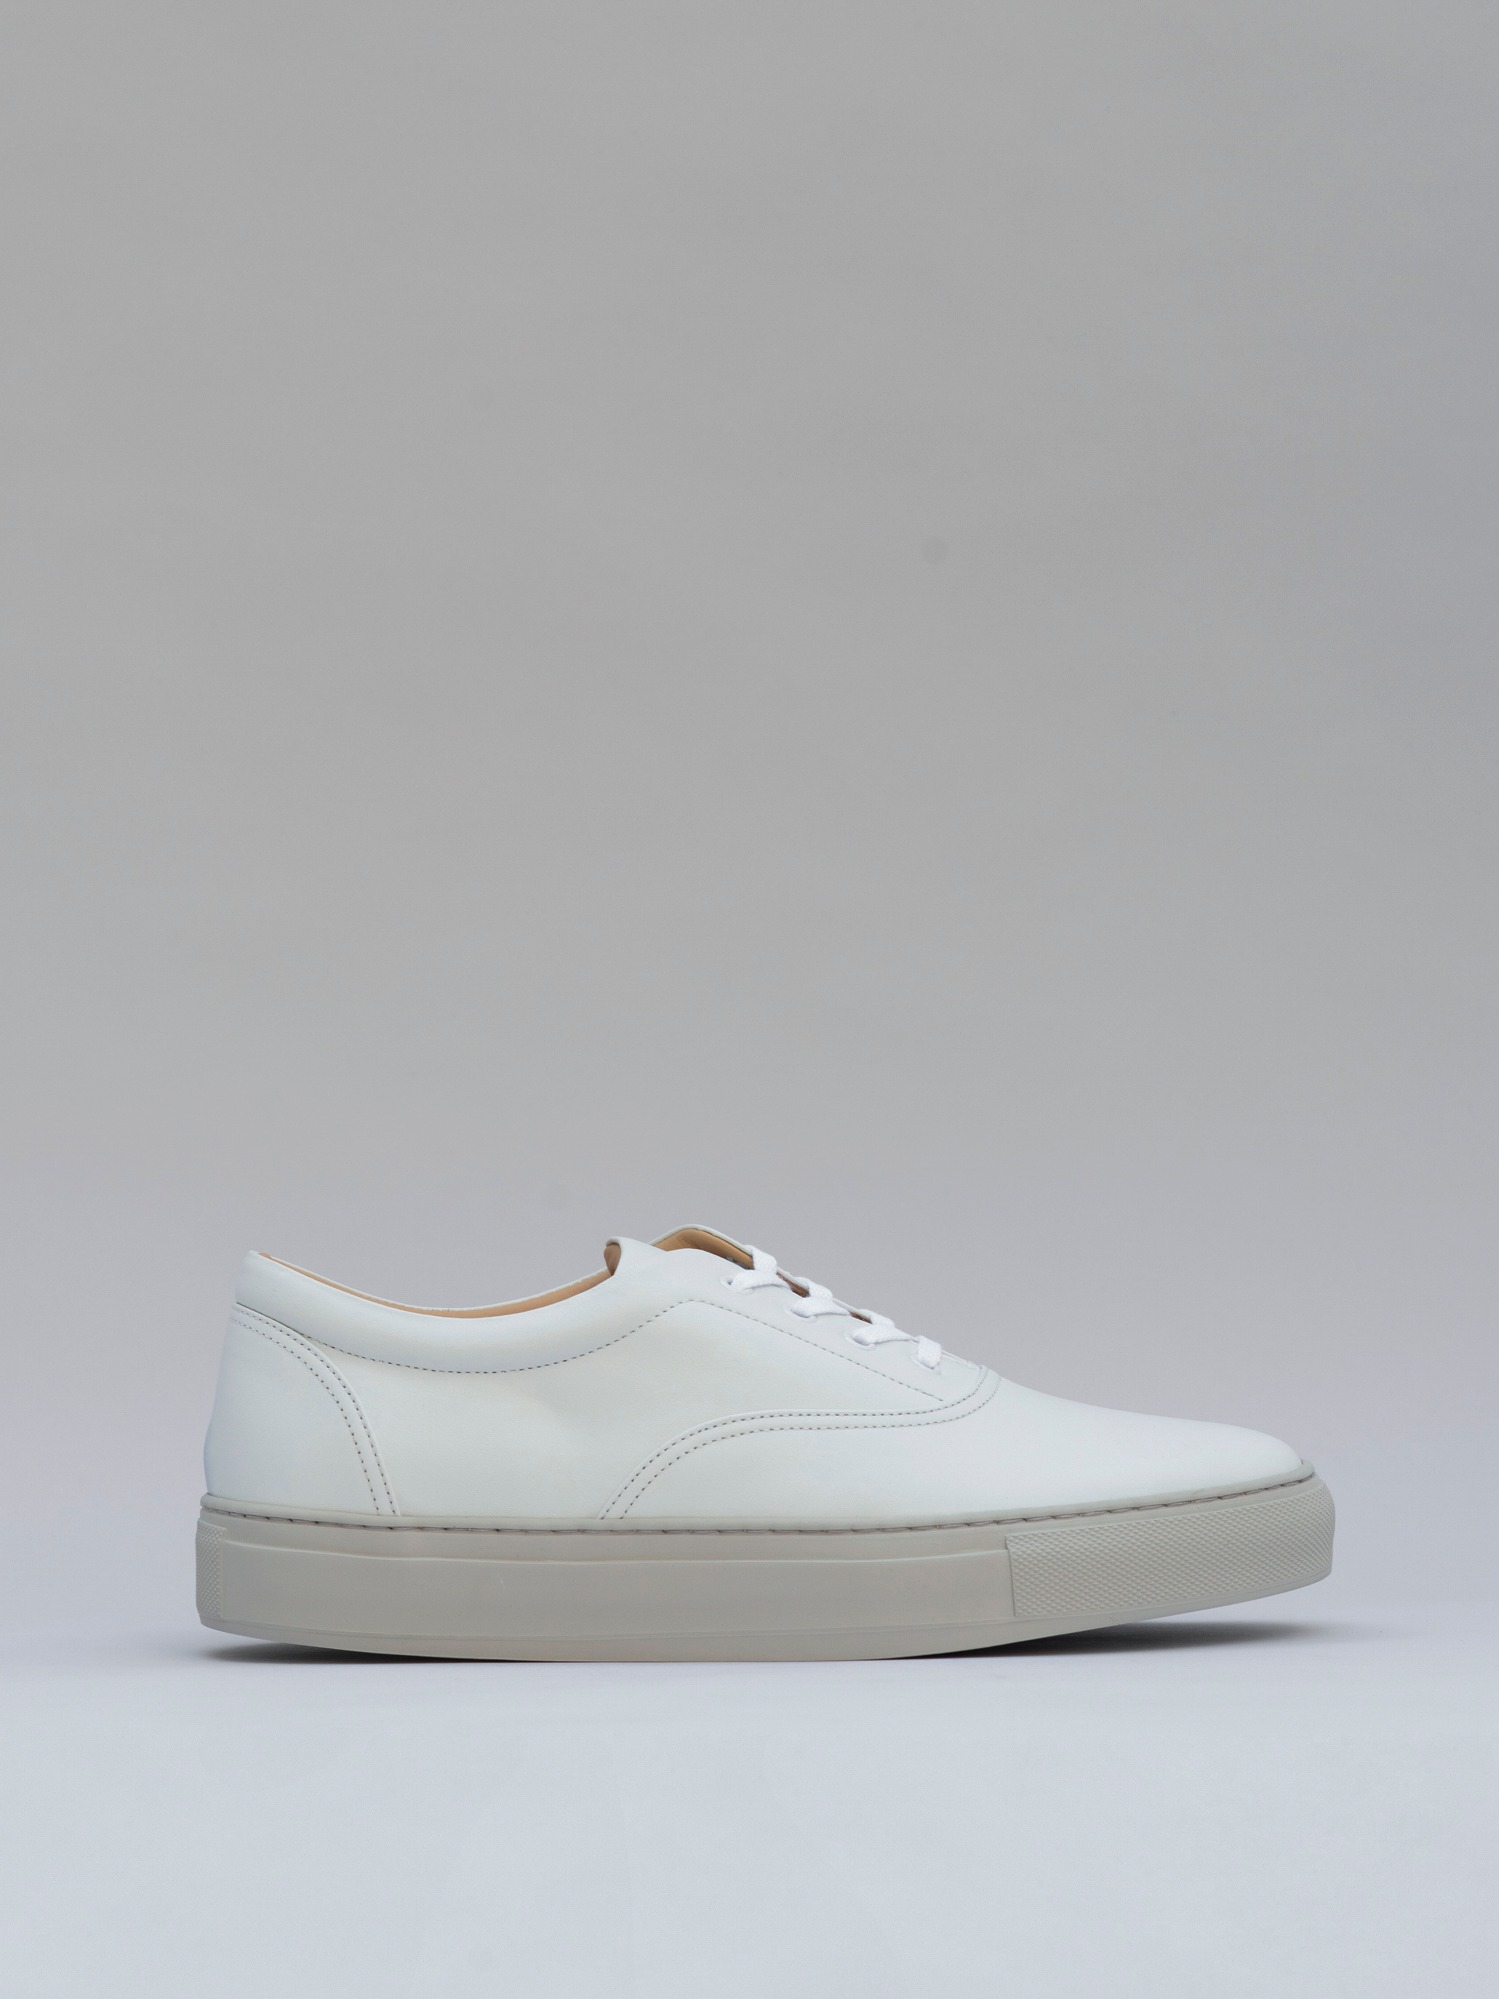 balmoral 01 leather concrete white